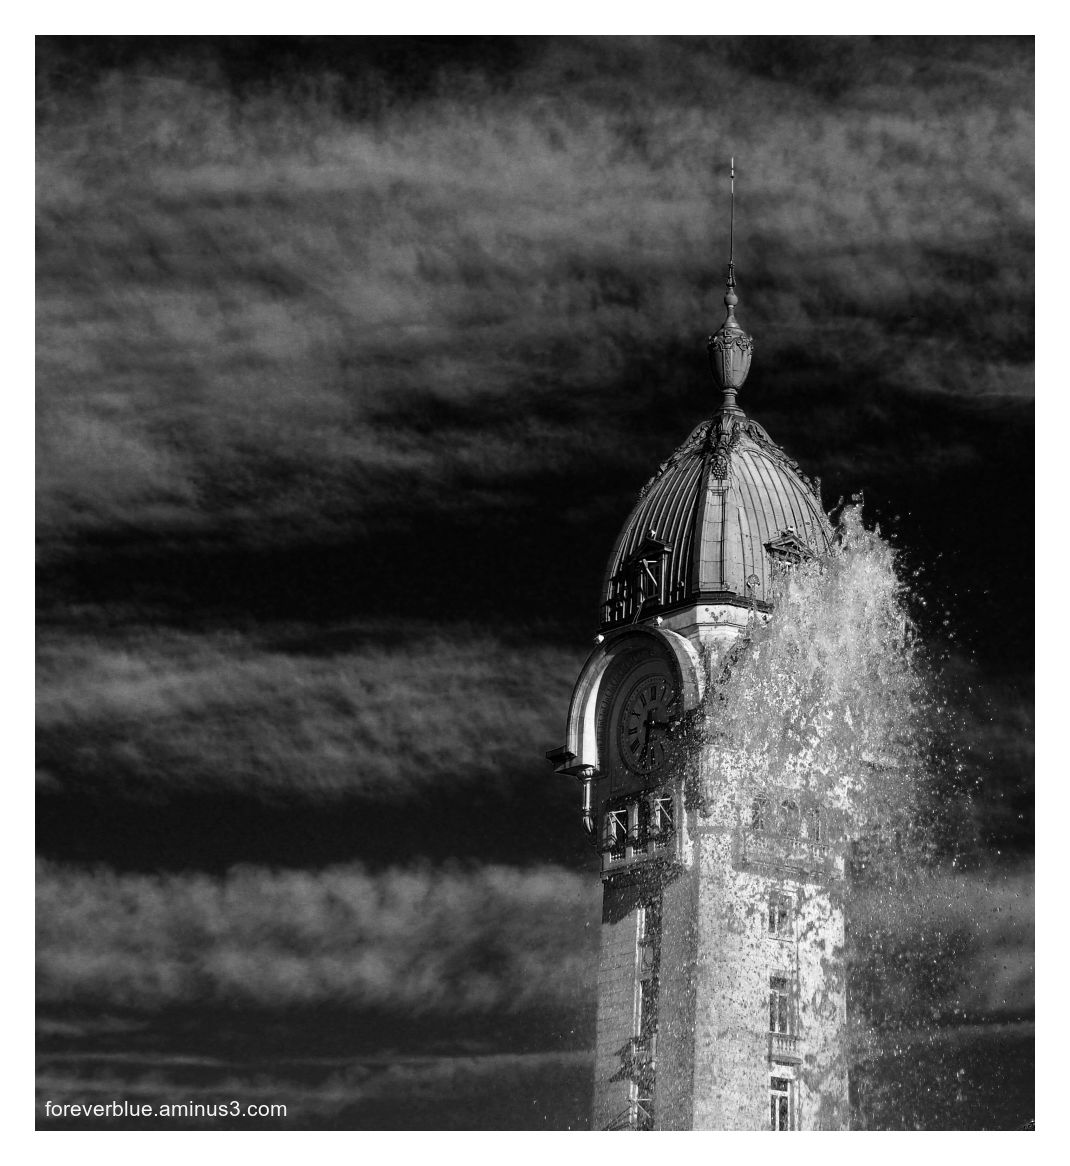 ... STORM ON THE TOWER ....